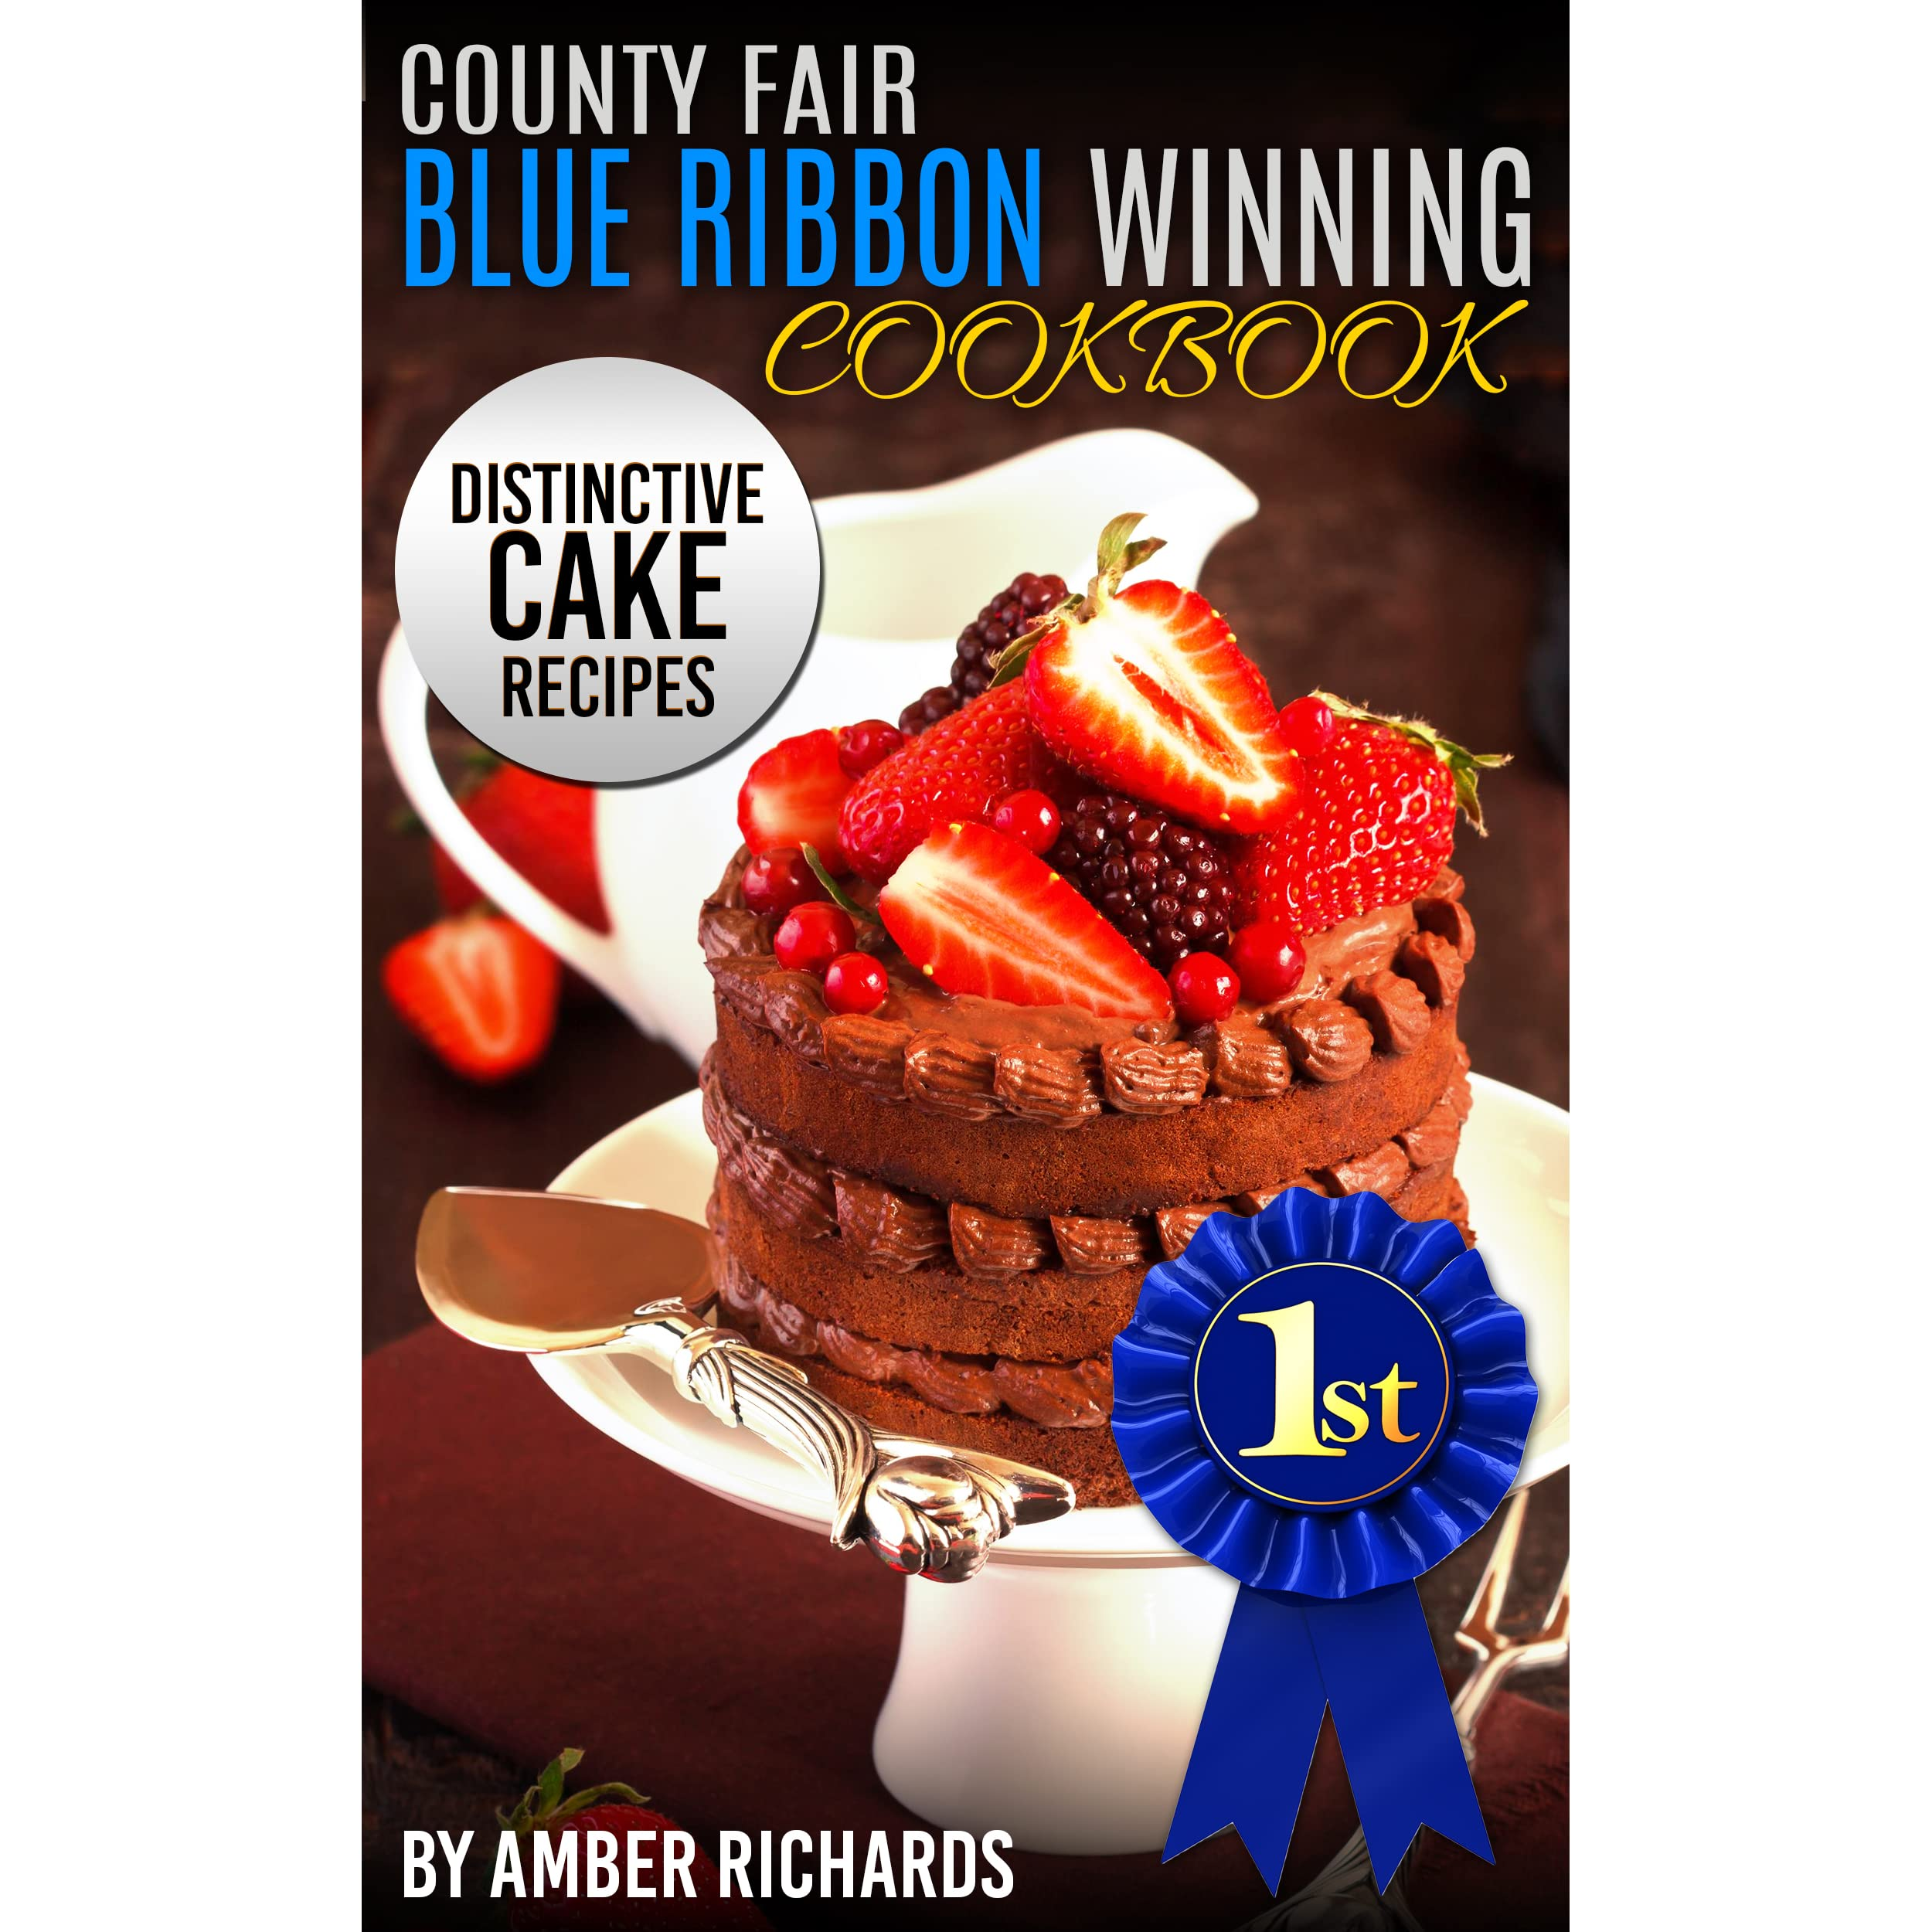 County Fair Blue Ribbon Winning Cookbook Distinctive Cake